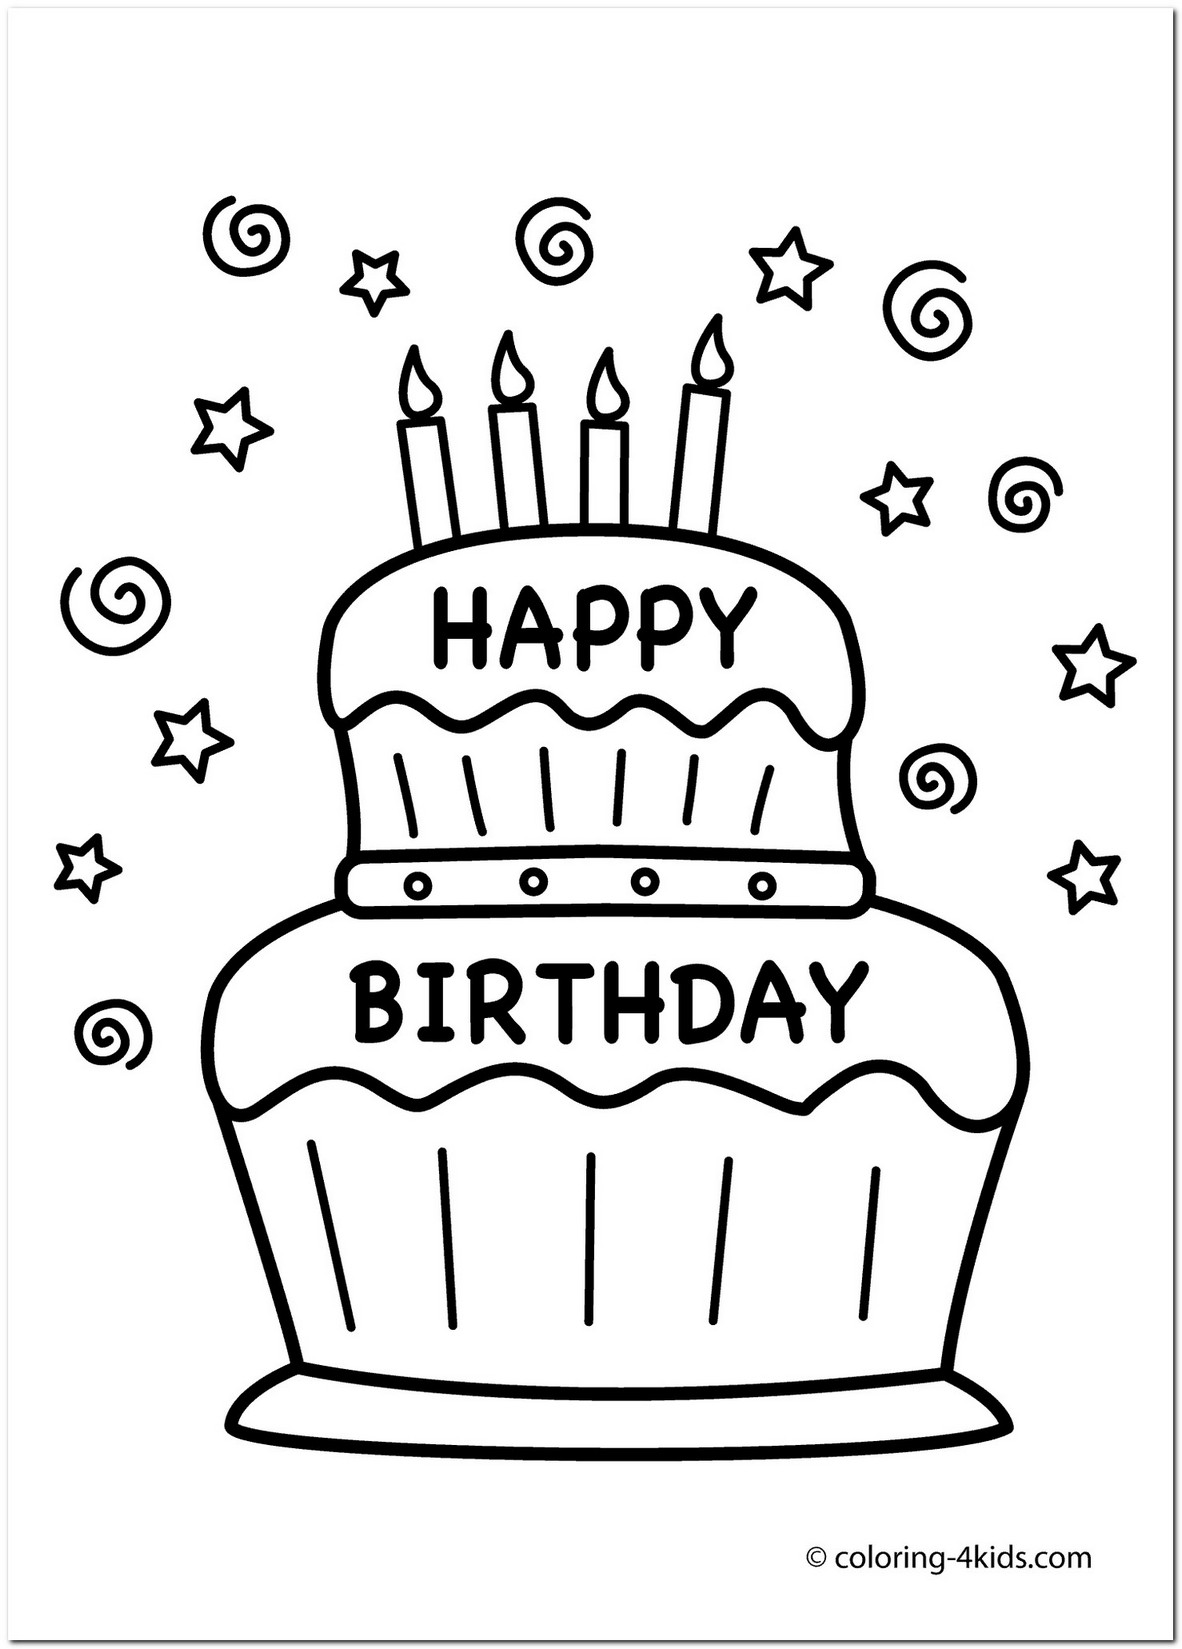 1182x1649 coloring page birthday cake free Drawing Board Weekly